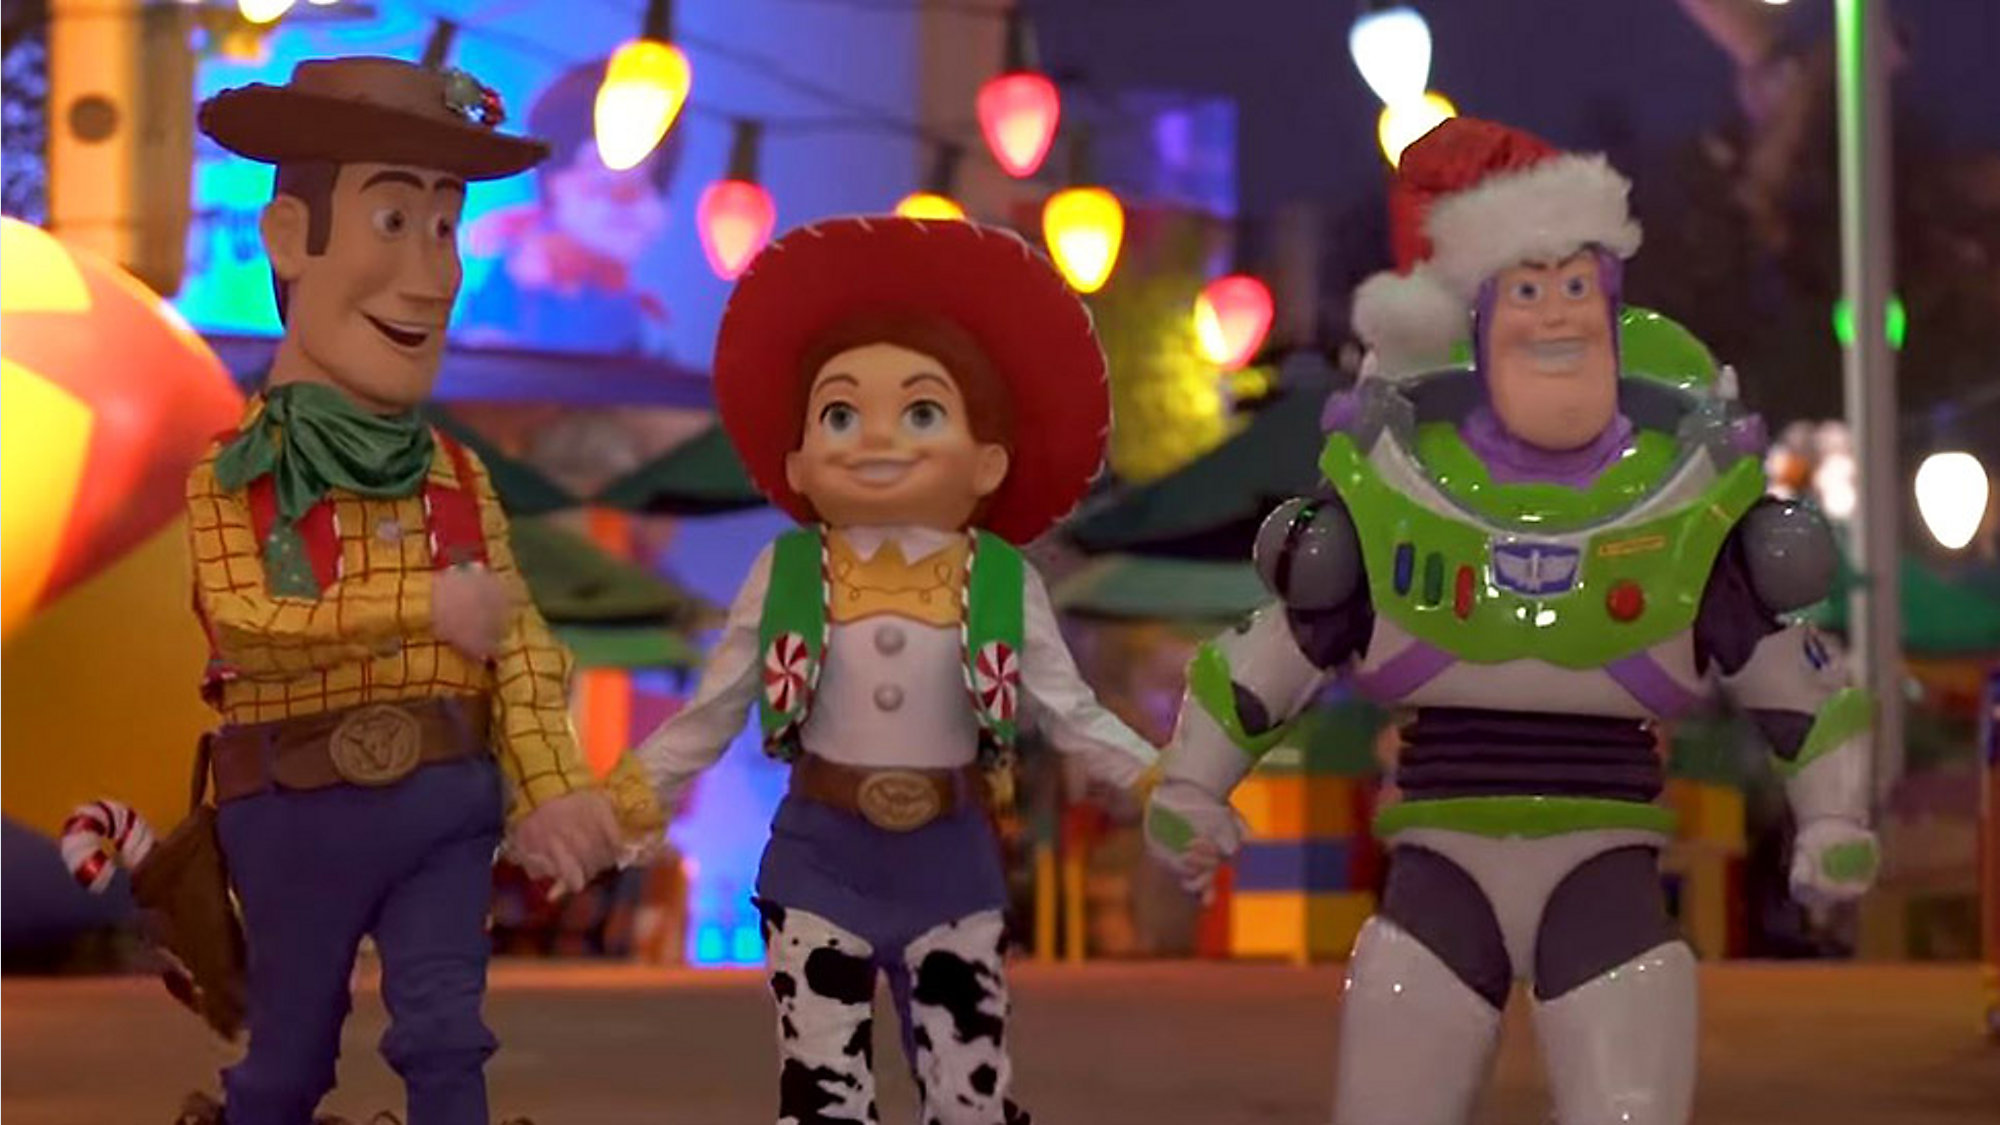 disney shares first look at toy story lands holiday overlay - Toy Story Christmas Special